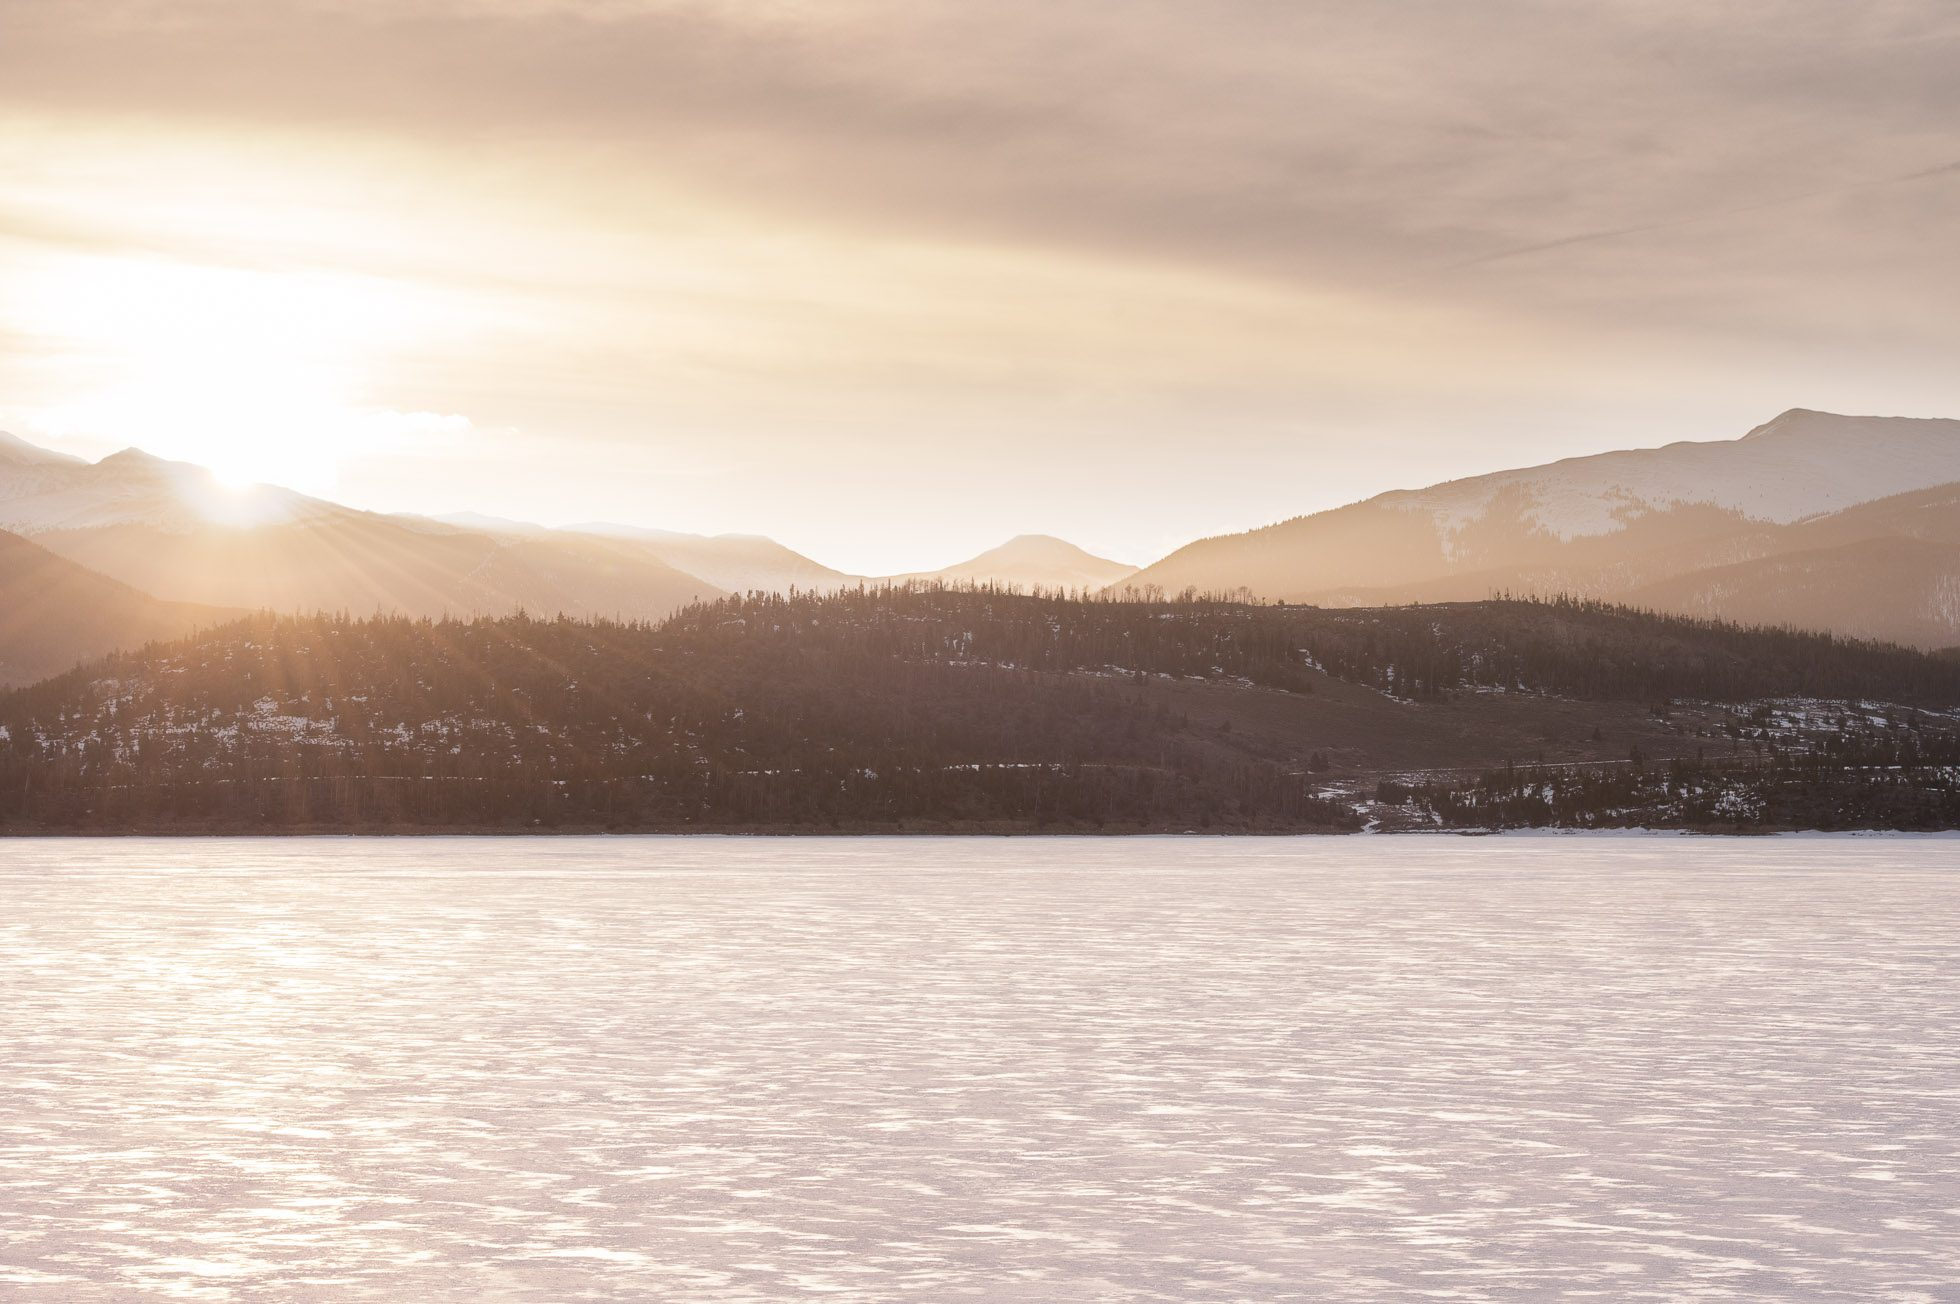 A photograph looking over Dillon Reservoir in Frisco, CO at the mountains in the distance as the sun rises